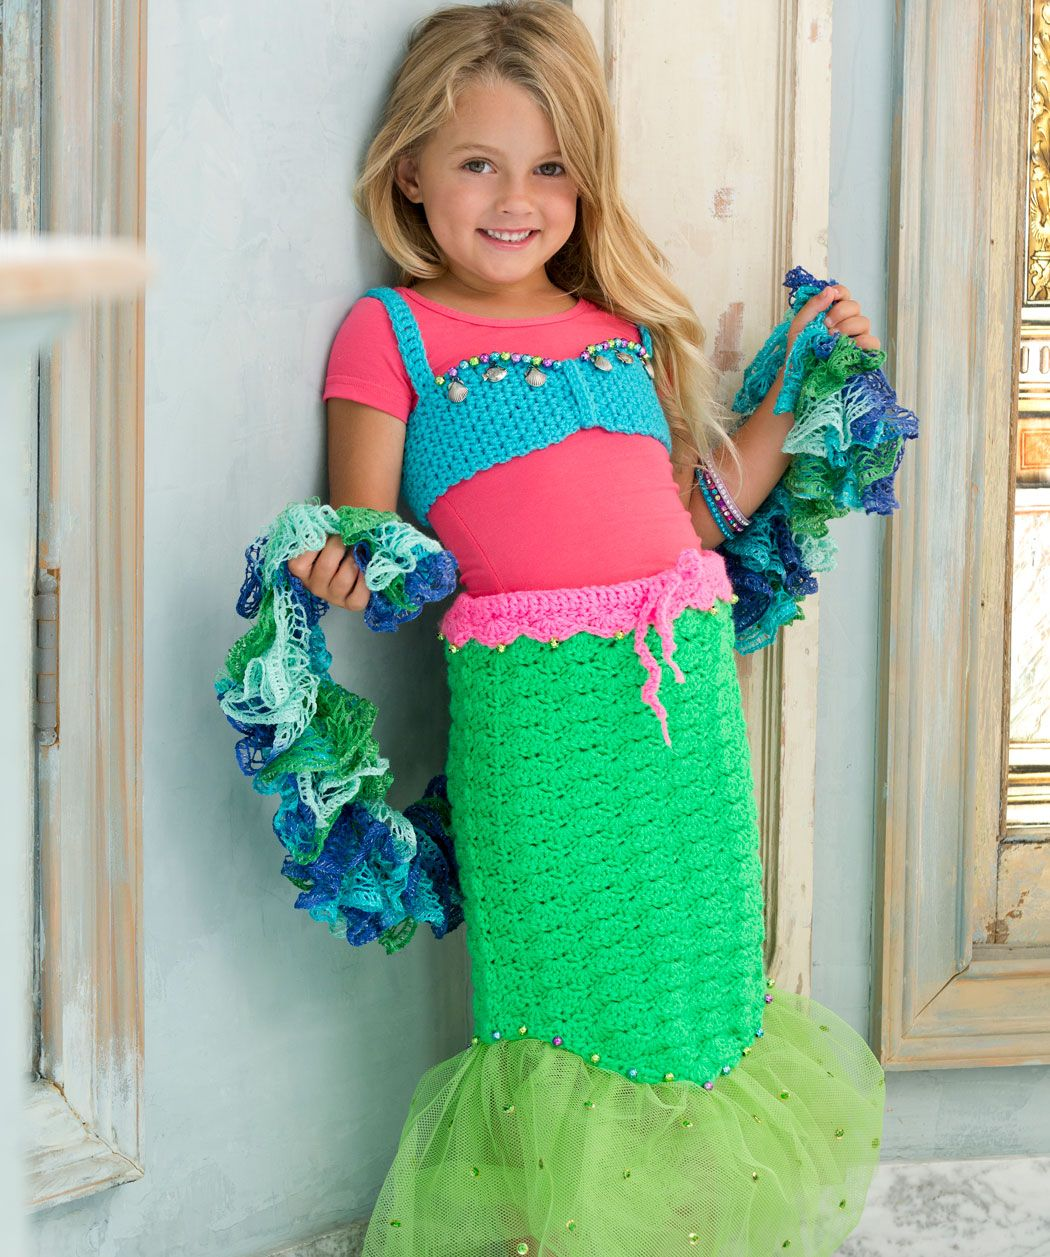 Petite mermaid costume free crochet pattern from red heart yarns petite mermaid costume free crochet pattern from red heart yarns halloween bankloansurffo Image collections